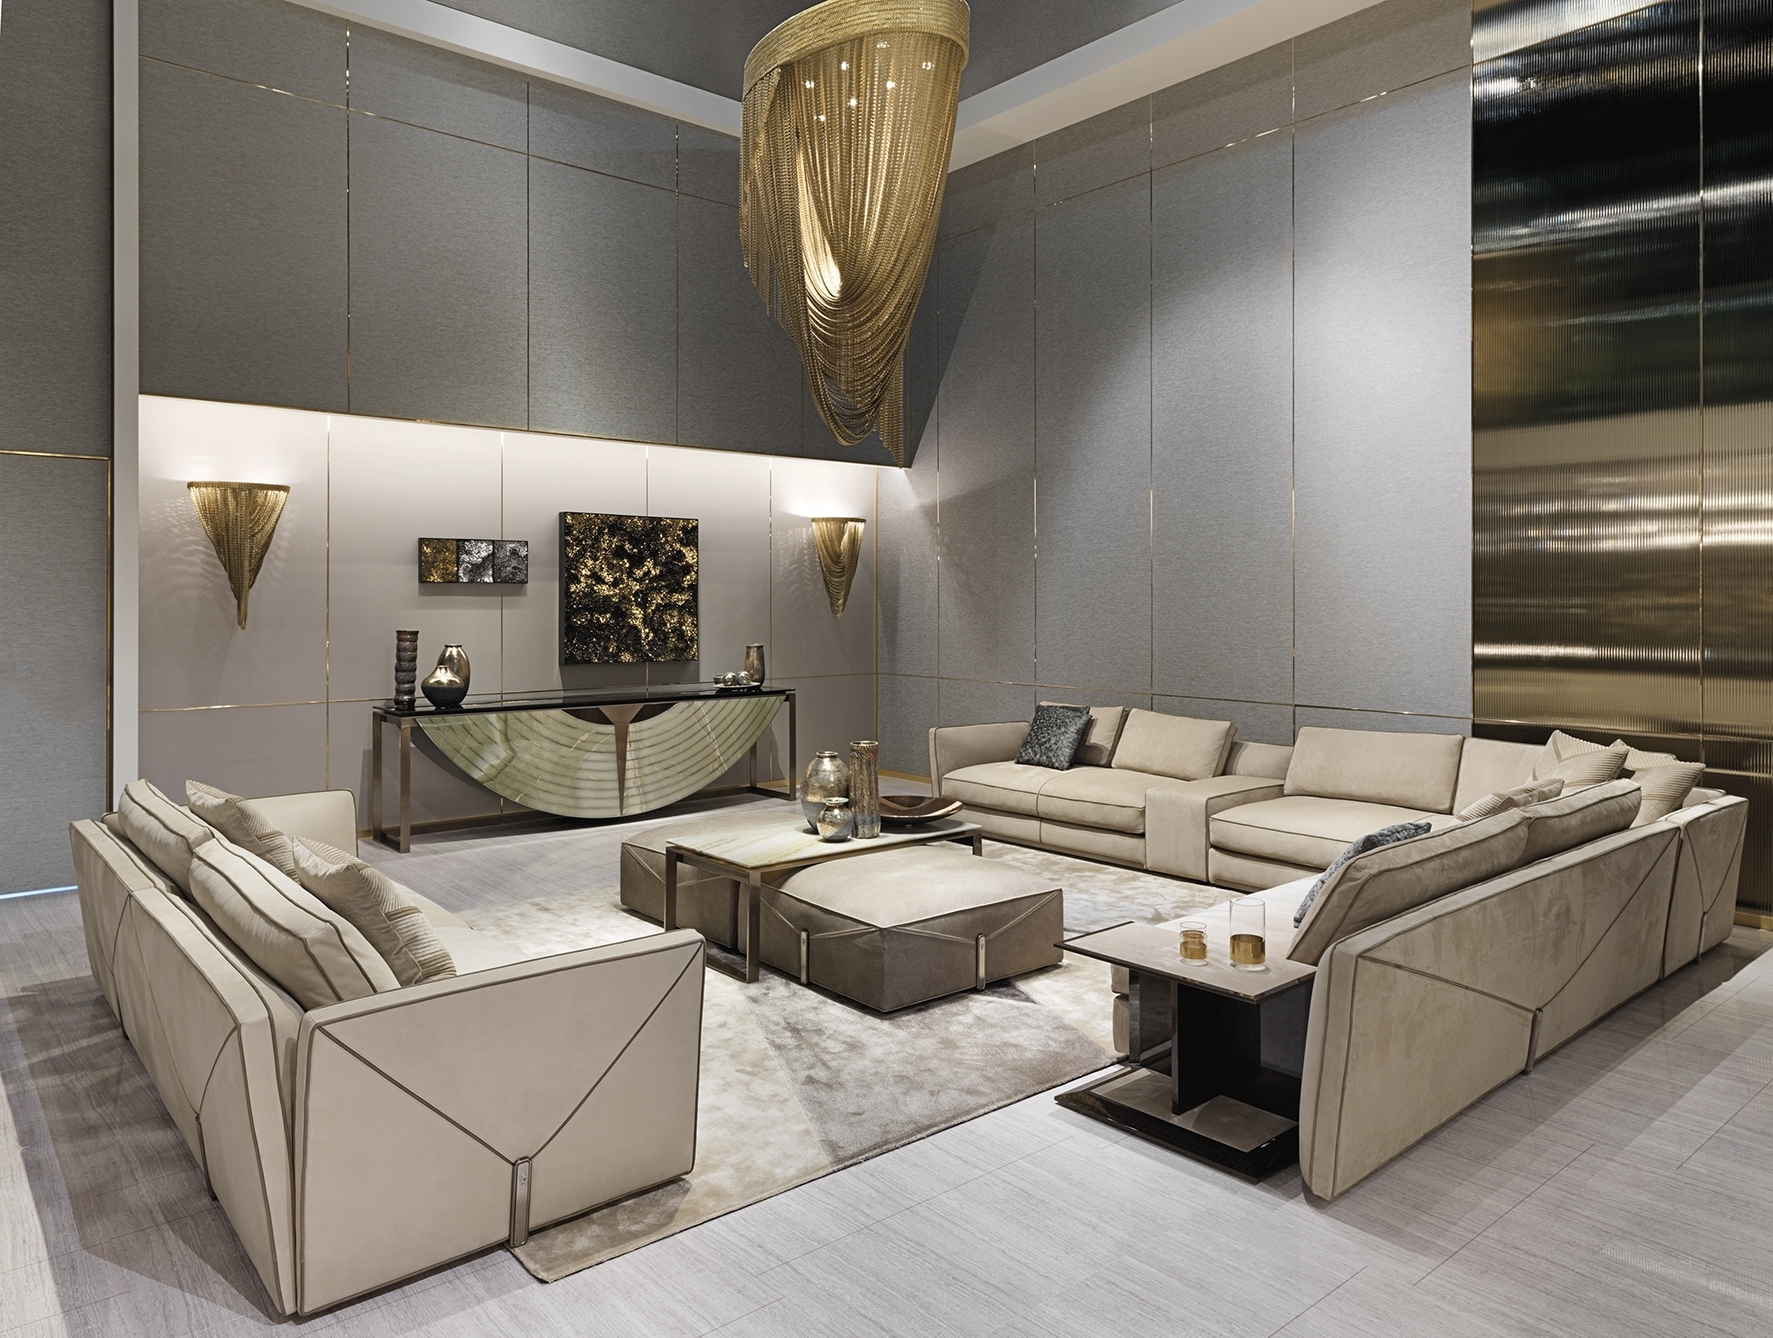 Well Liked Italian Designer Luxury High End Sofas & Sofa Chairs: Nella Vetrina Intended For High End Sofas (View 11 of 15)